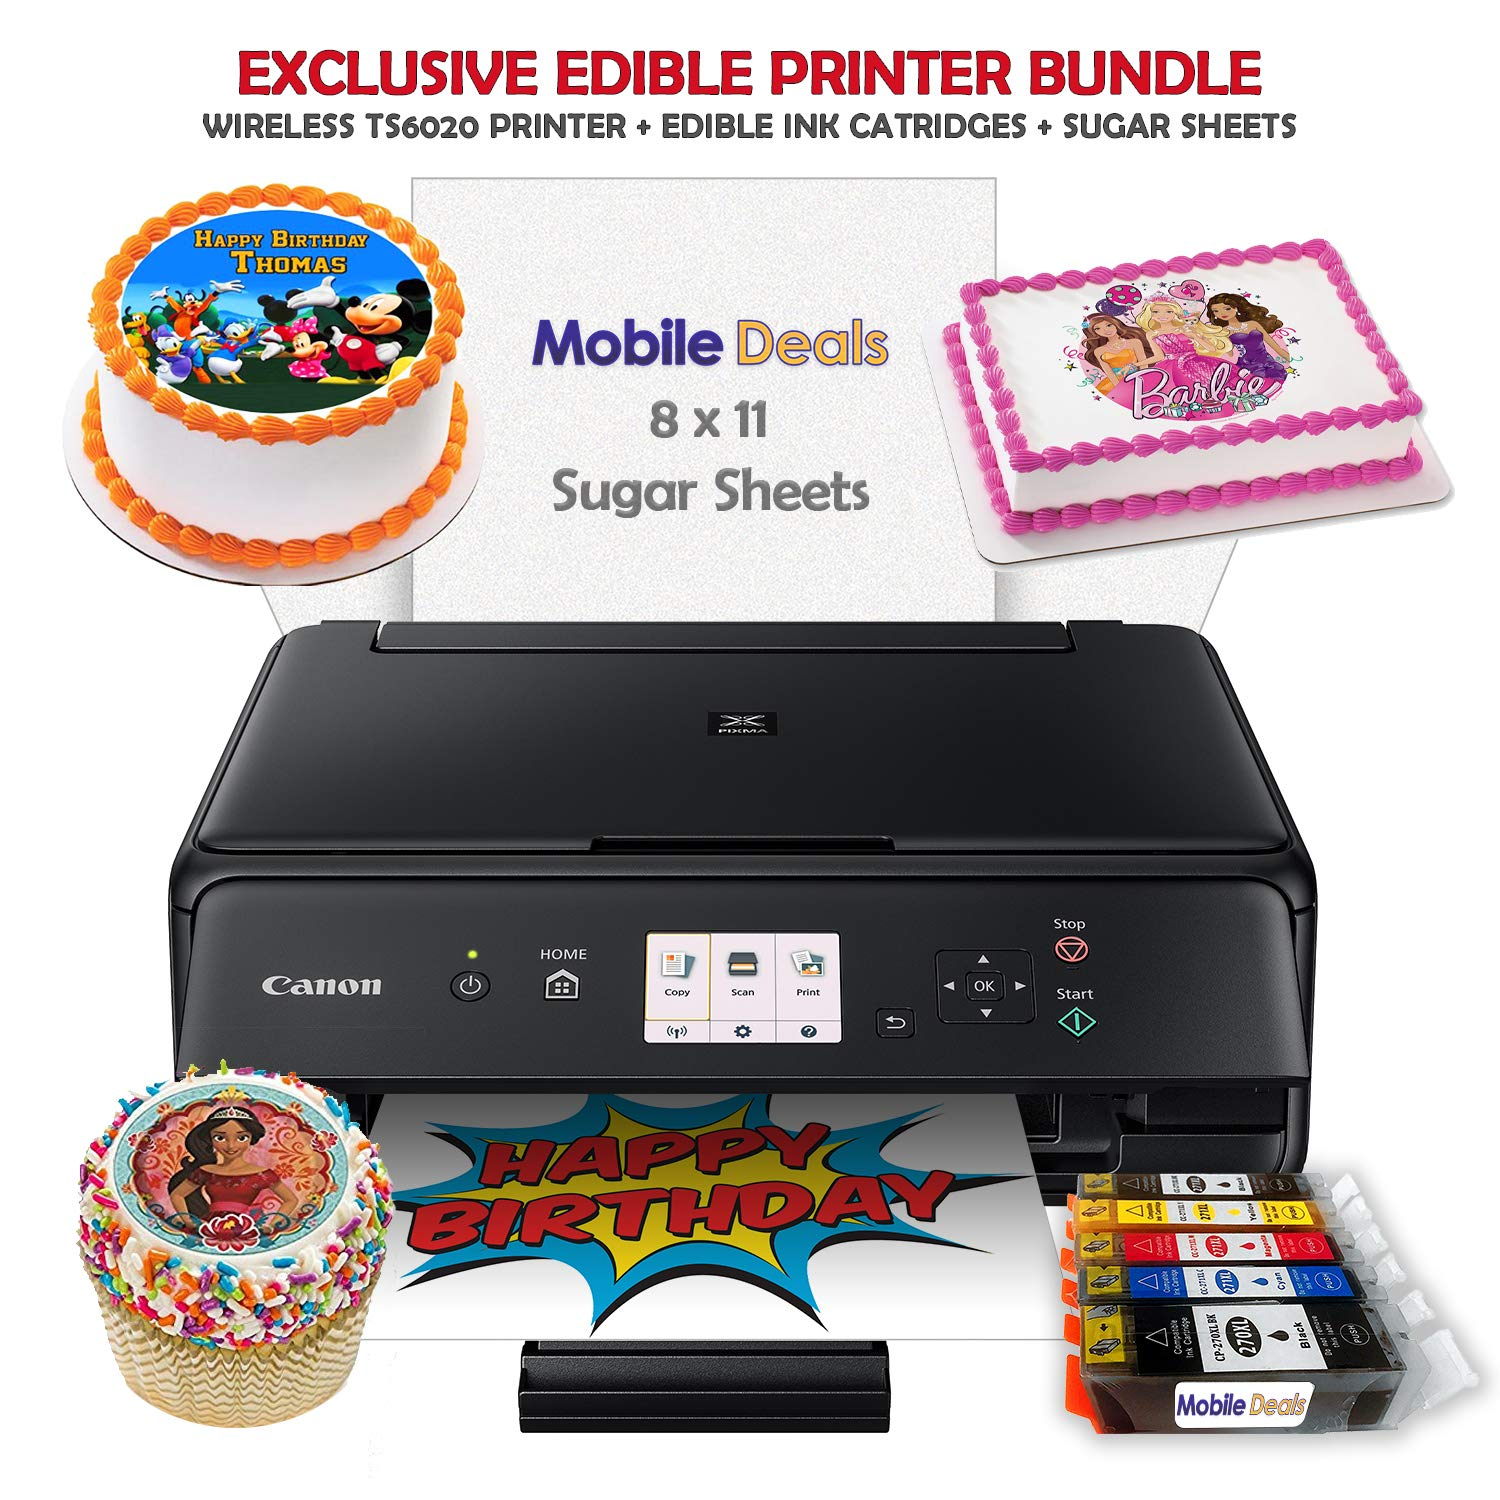 Mobile Deals Edible Birthday Cake Topper and Tasty Treats Image Printer Bundle - Includes Canon Wireless Printer, Edible Ink Cartridges and Sugar Sheets by Mobile Deals (Image #1)